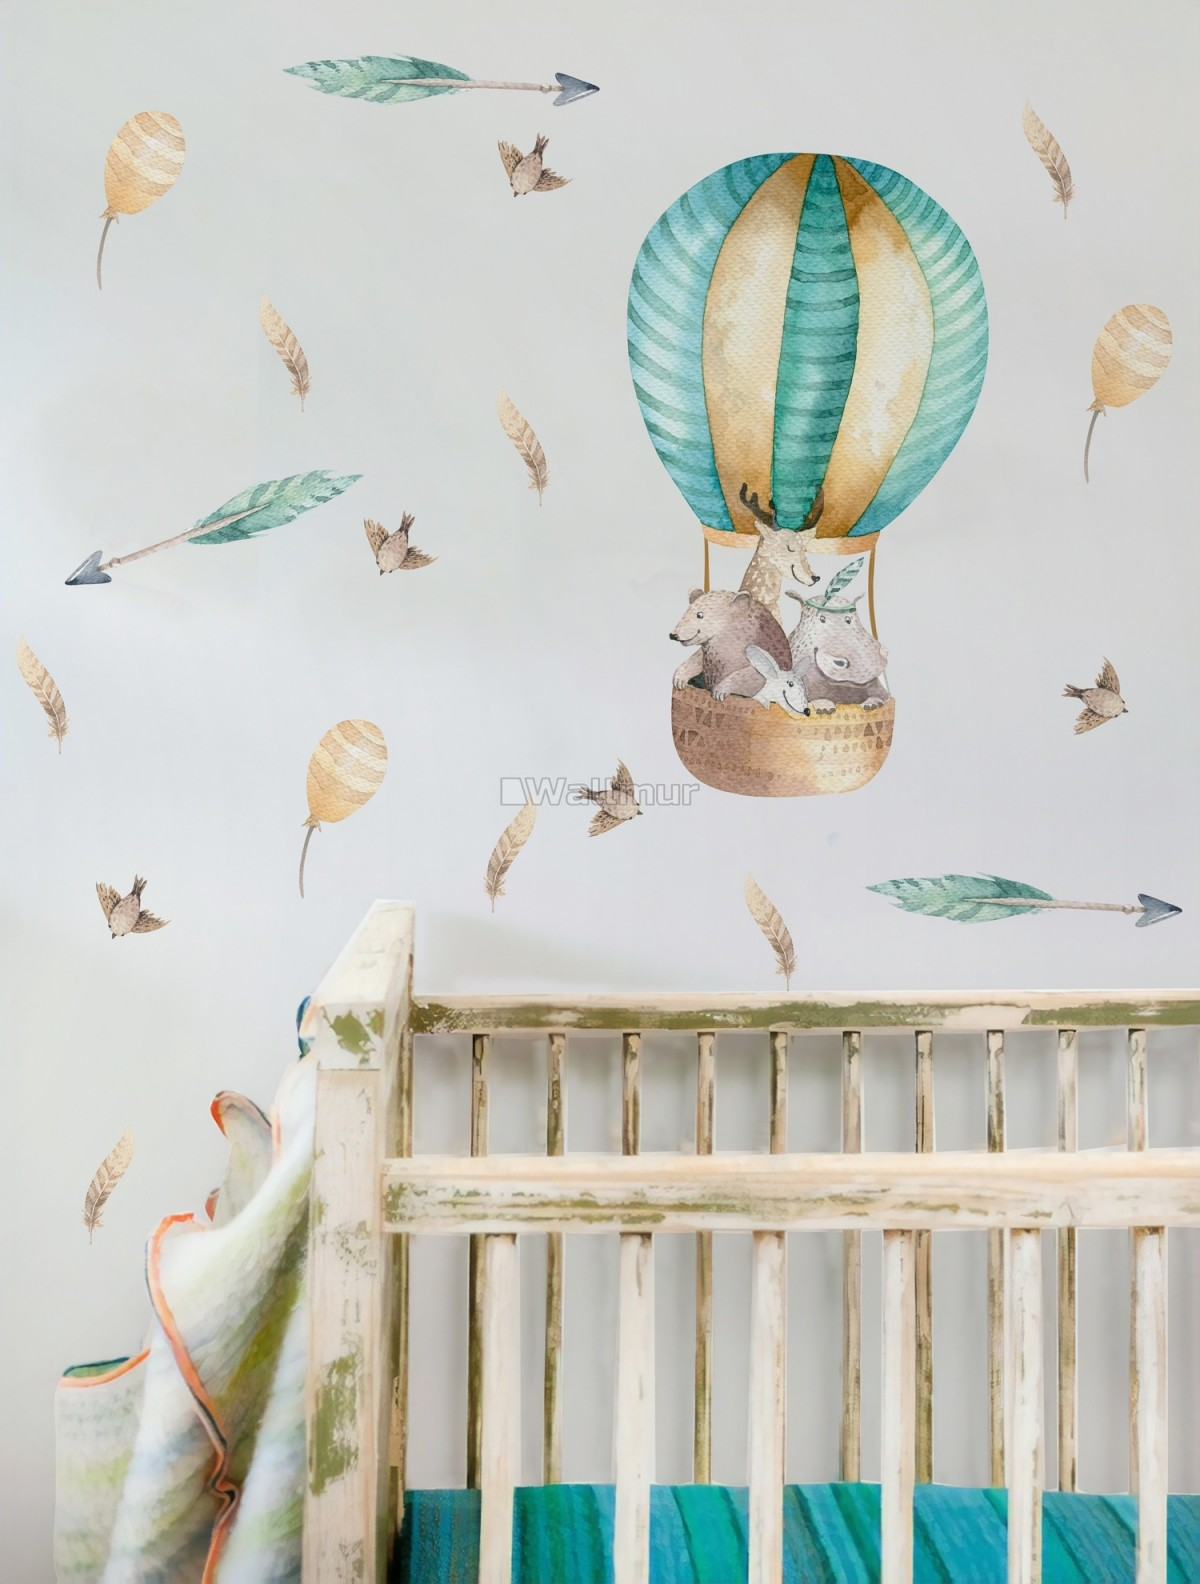 Kids Watercolor Hot Air Balloon with Animals and Colorful Feathers Wall Decal Sticker